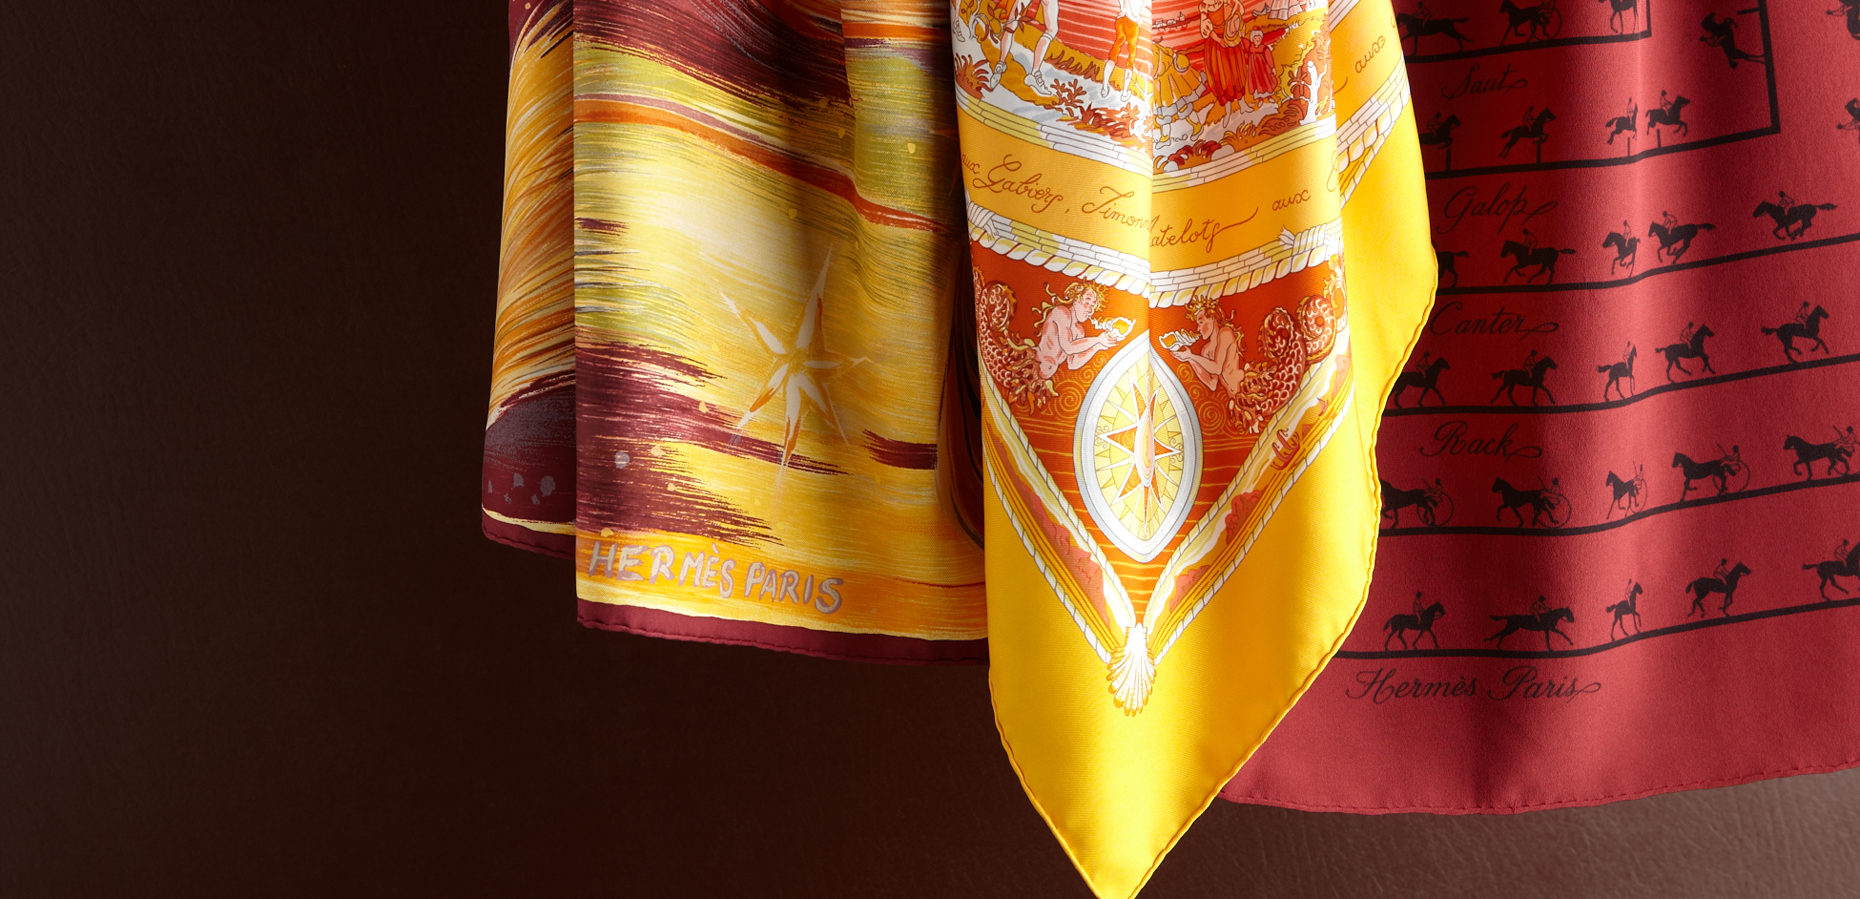 121001_Archive-Hermes-Scarves_10121465